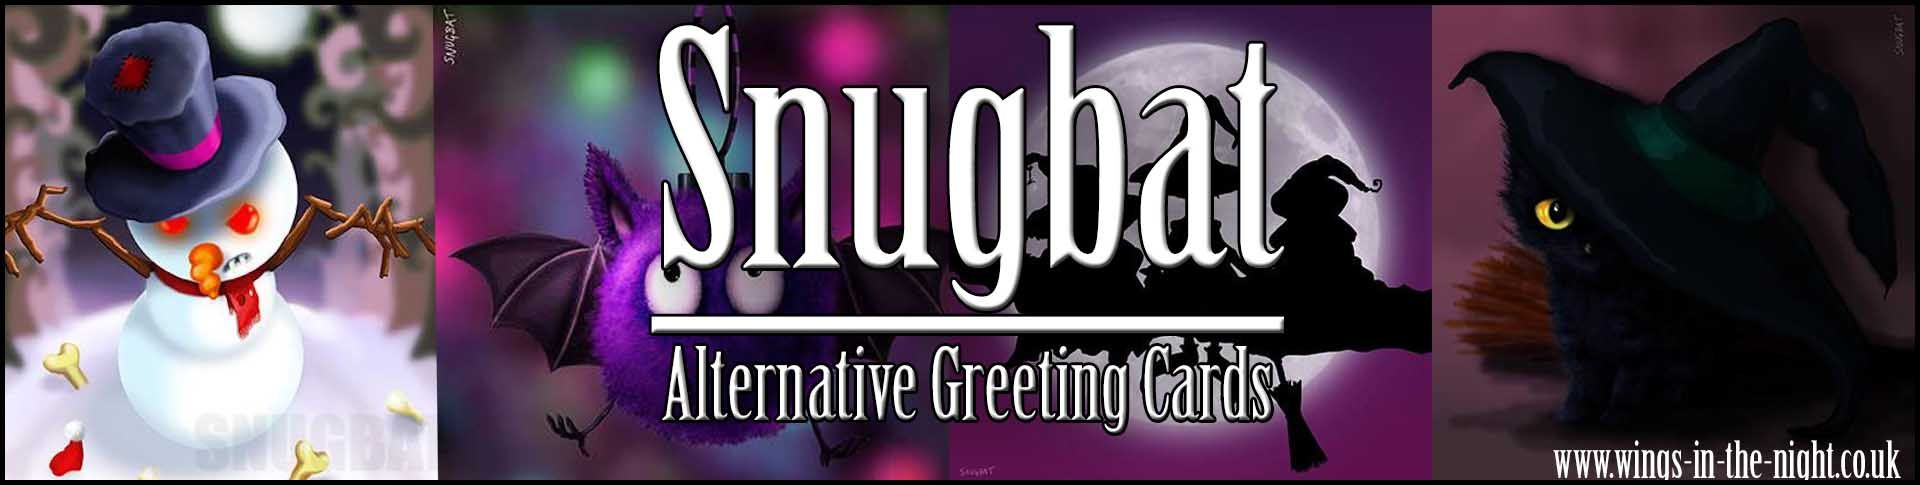 Snugbat Gothic Greeting Cards